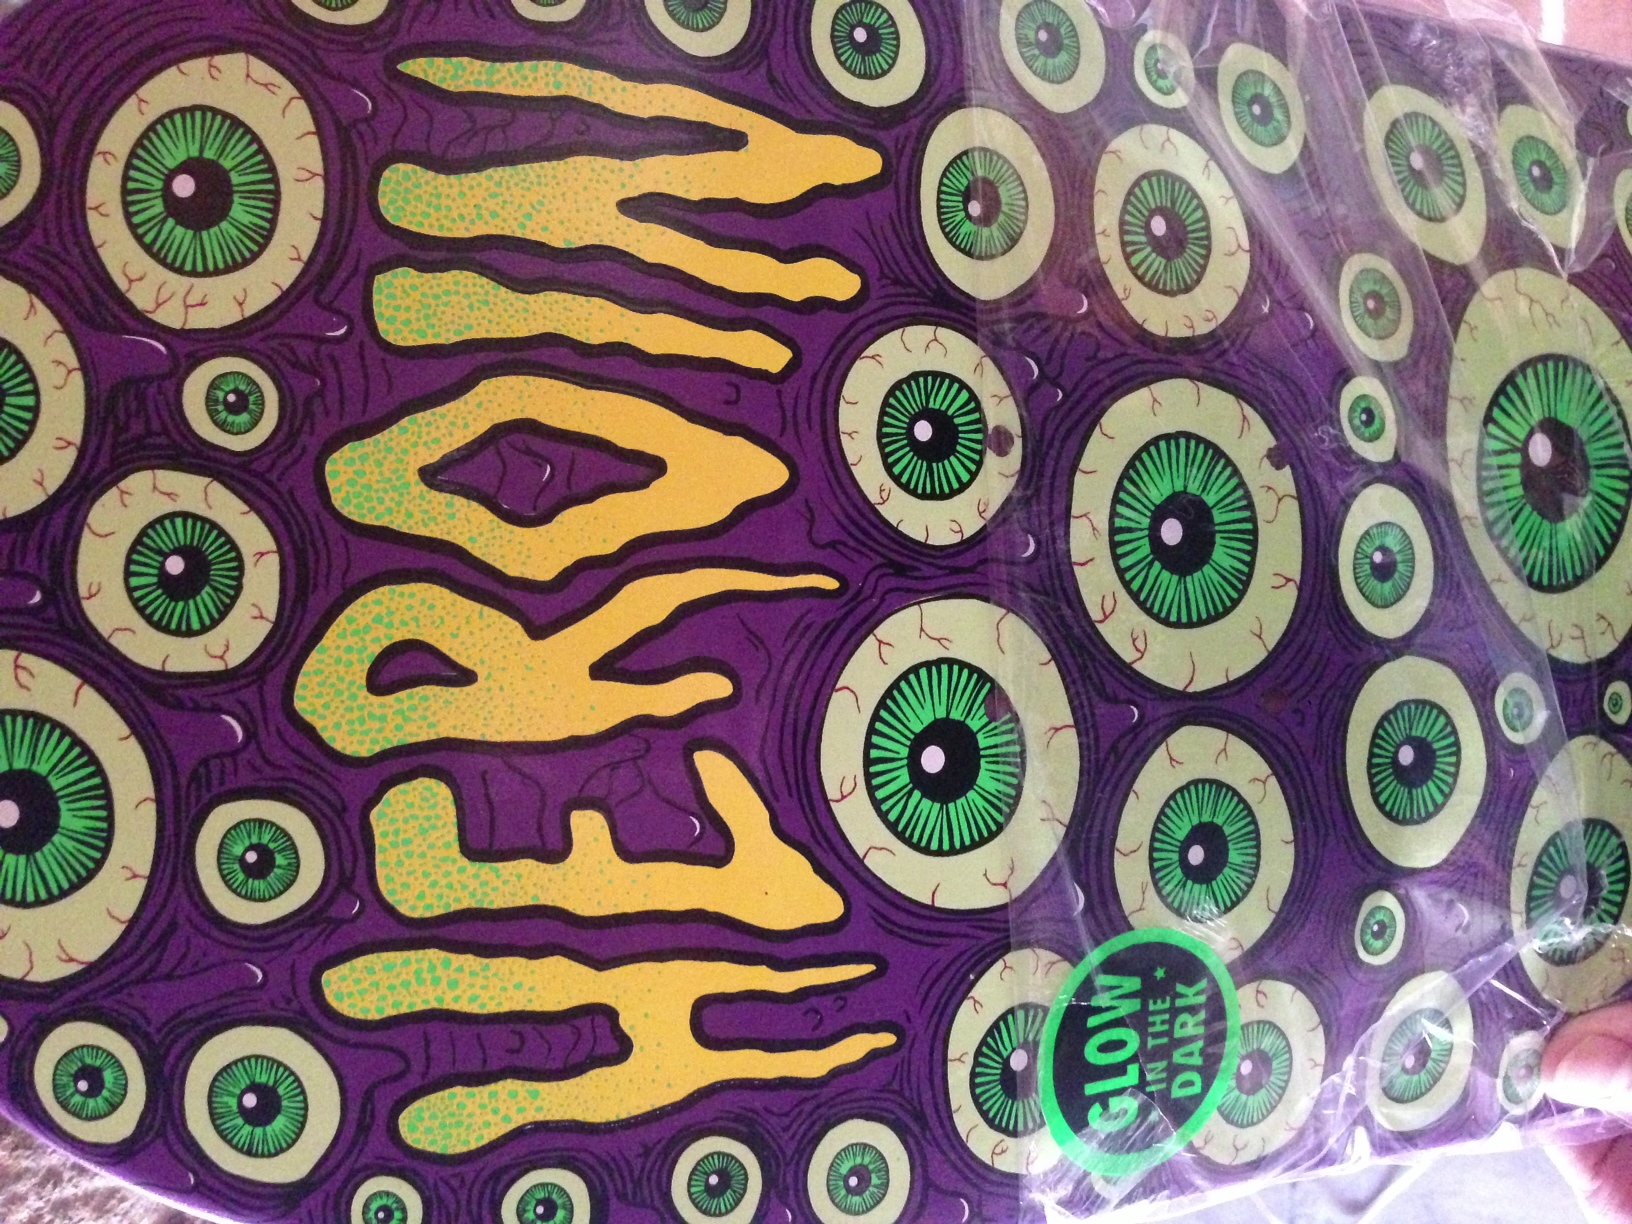 Sneak Peek at one of the new Eyes colourways that's coming soon. This one is 8.38. This graphic was inspired when I was on a train going to Stockwell and some woman was staring at my board and reading every single sticker on it, she couldn't take her eyes off my board, so I decided to design a board that stared back.